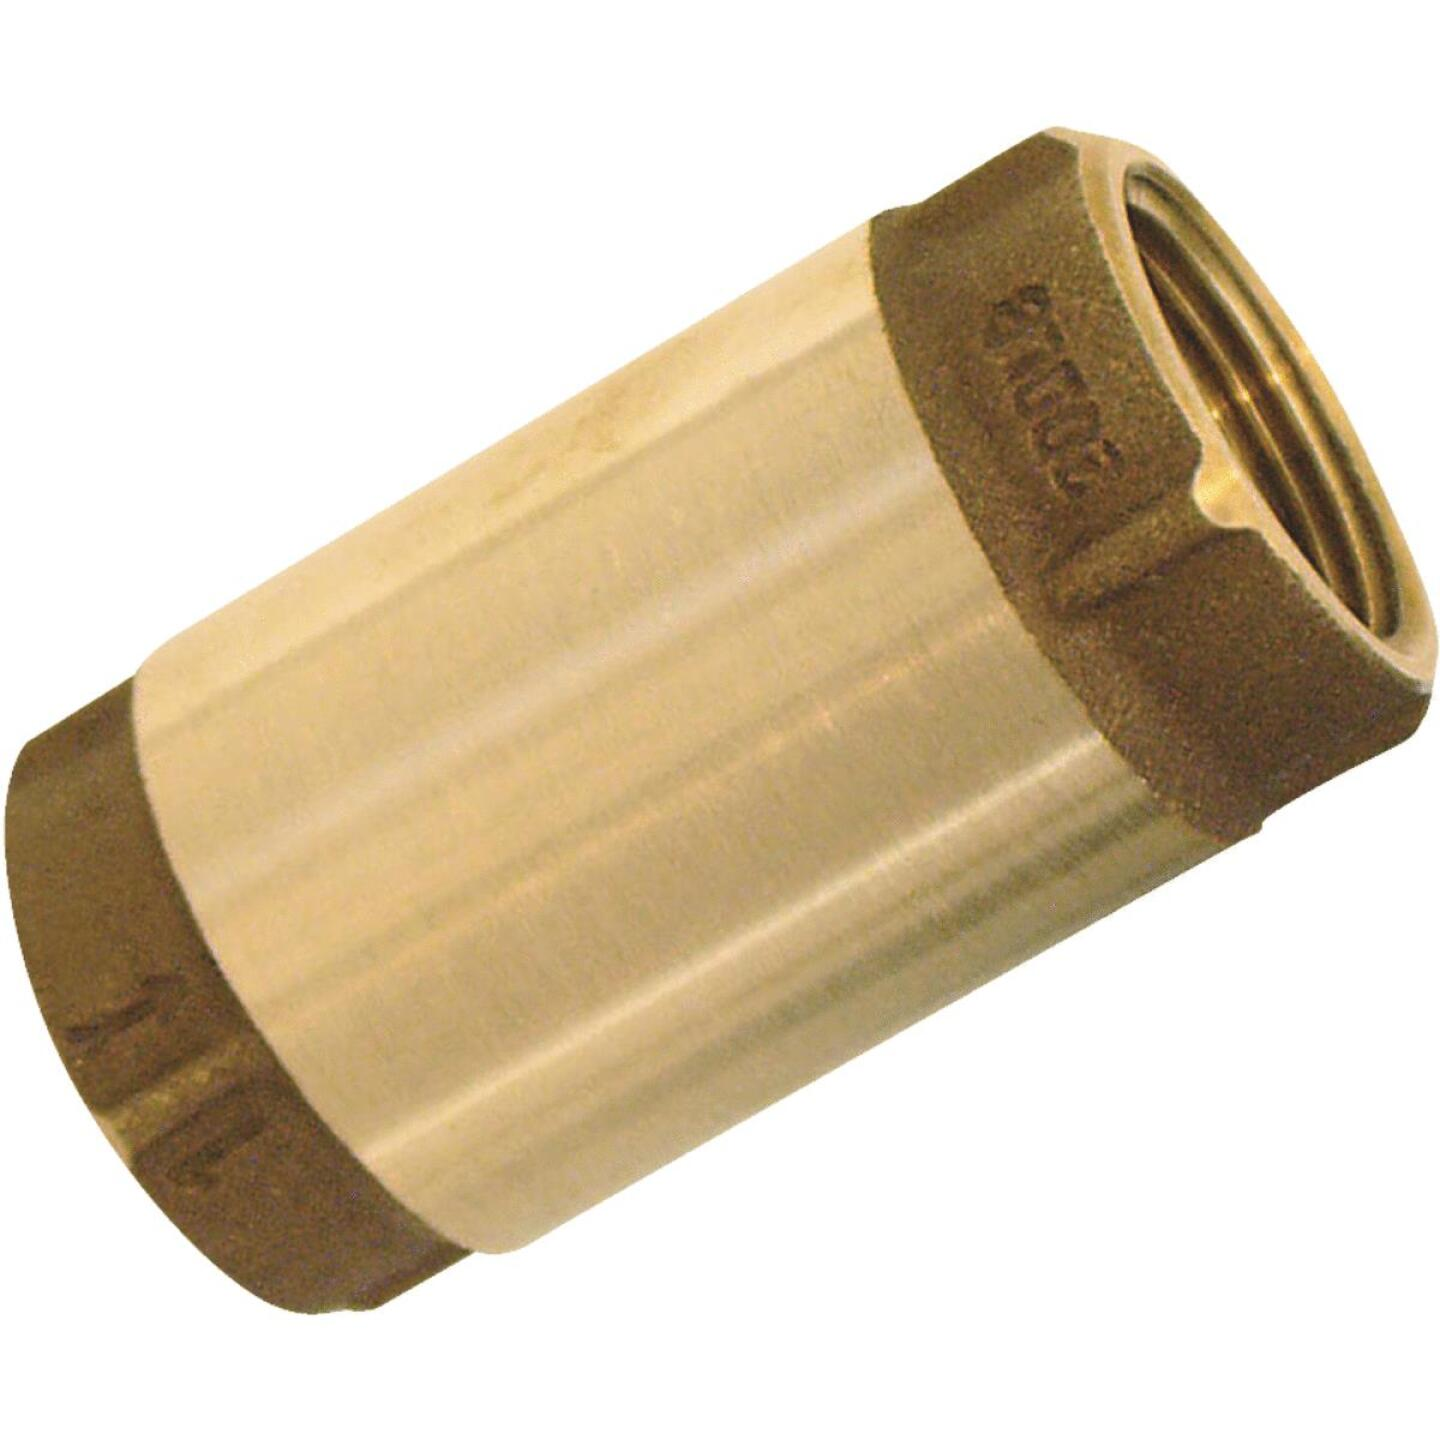 Simmons 1-1/2 In. Bronze Female Thread Check Valve Image 1